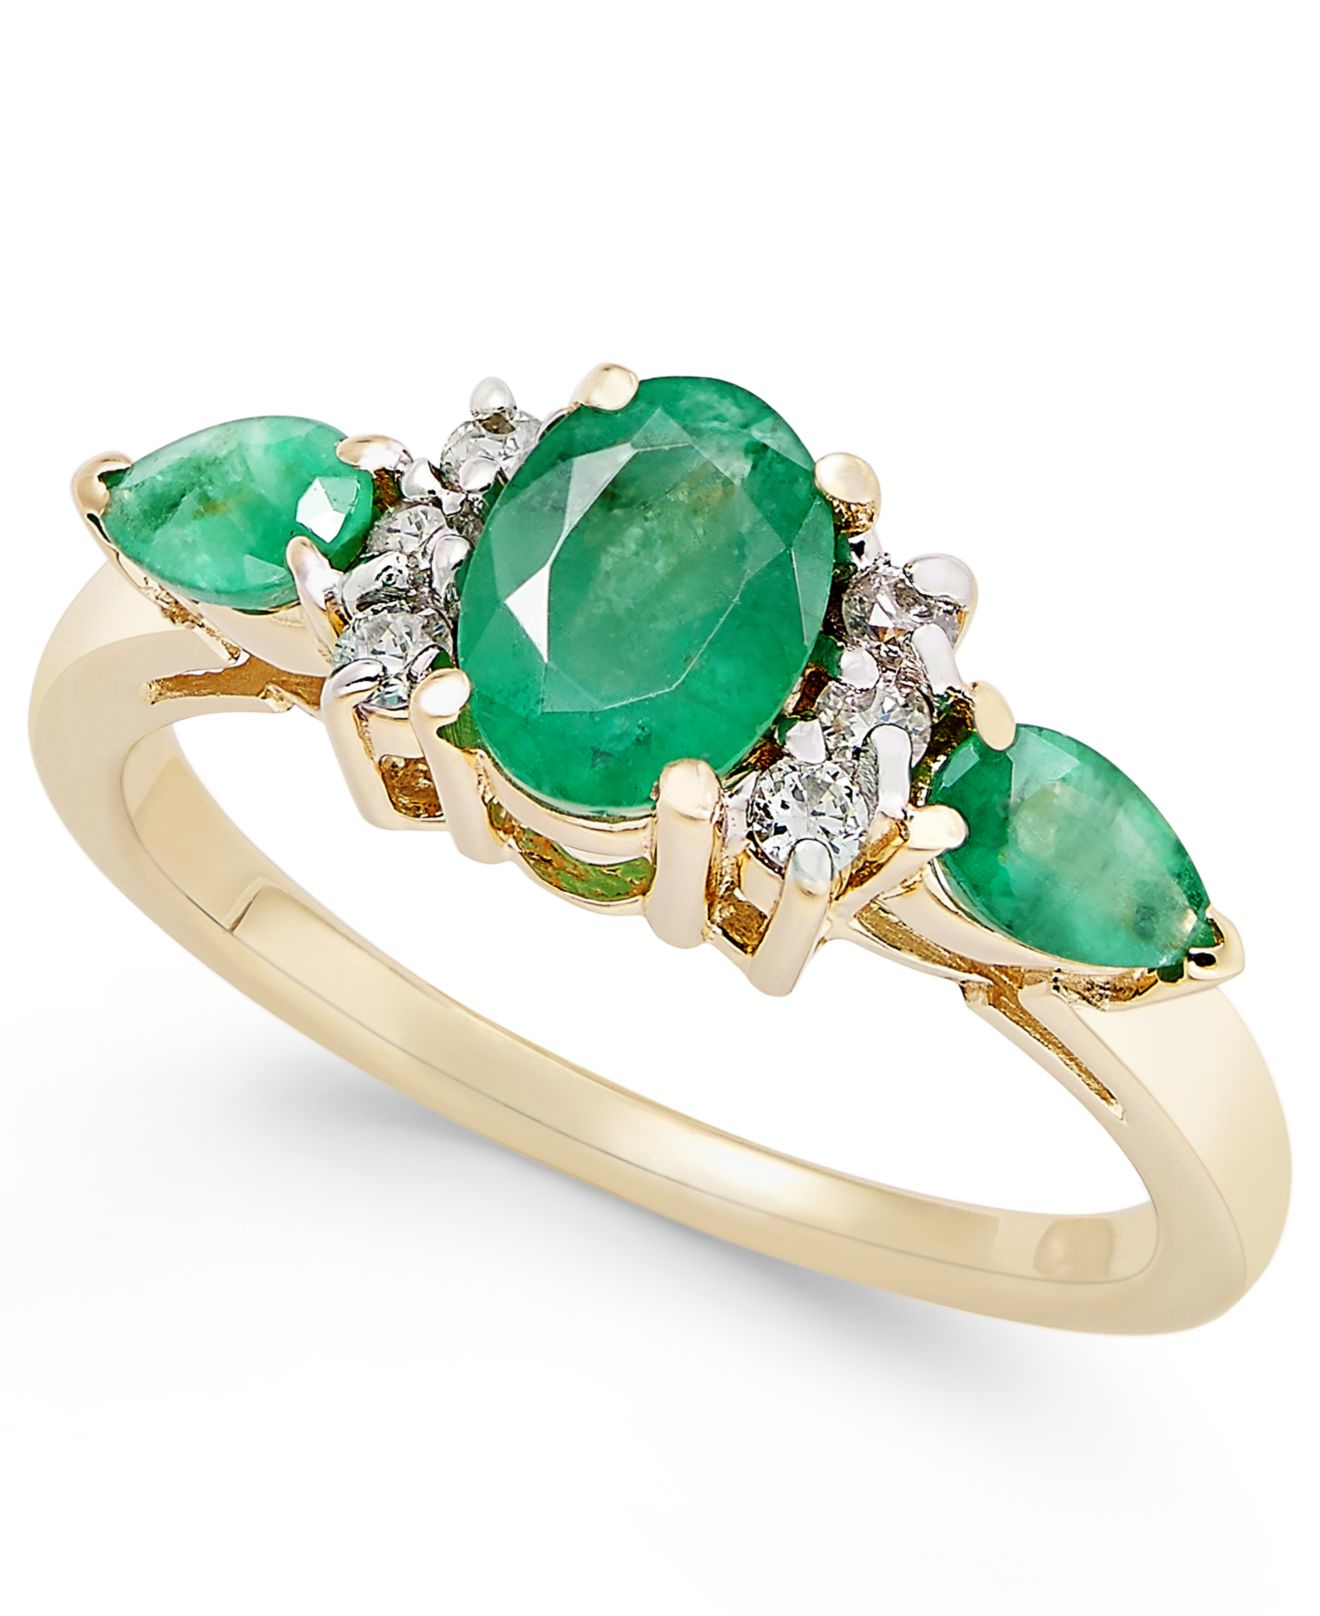 Macy s Emerald 1 1 4 Ct T w And Diamond 1 8 Ct T w Ring In 14k Go